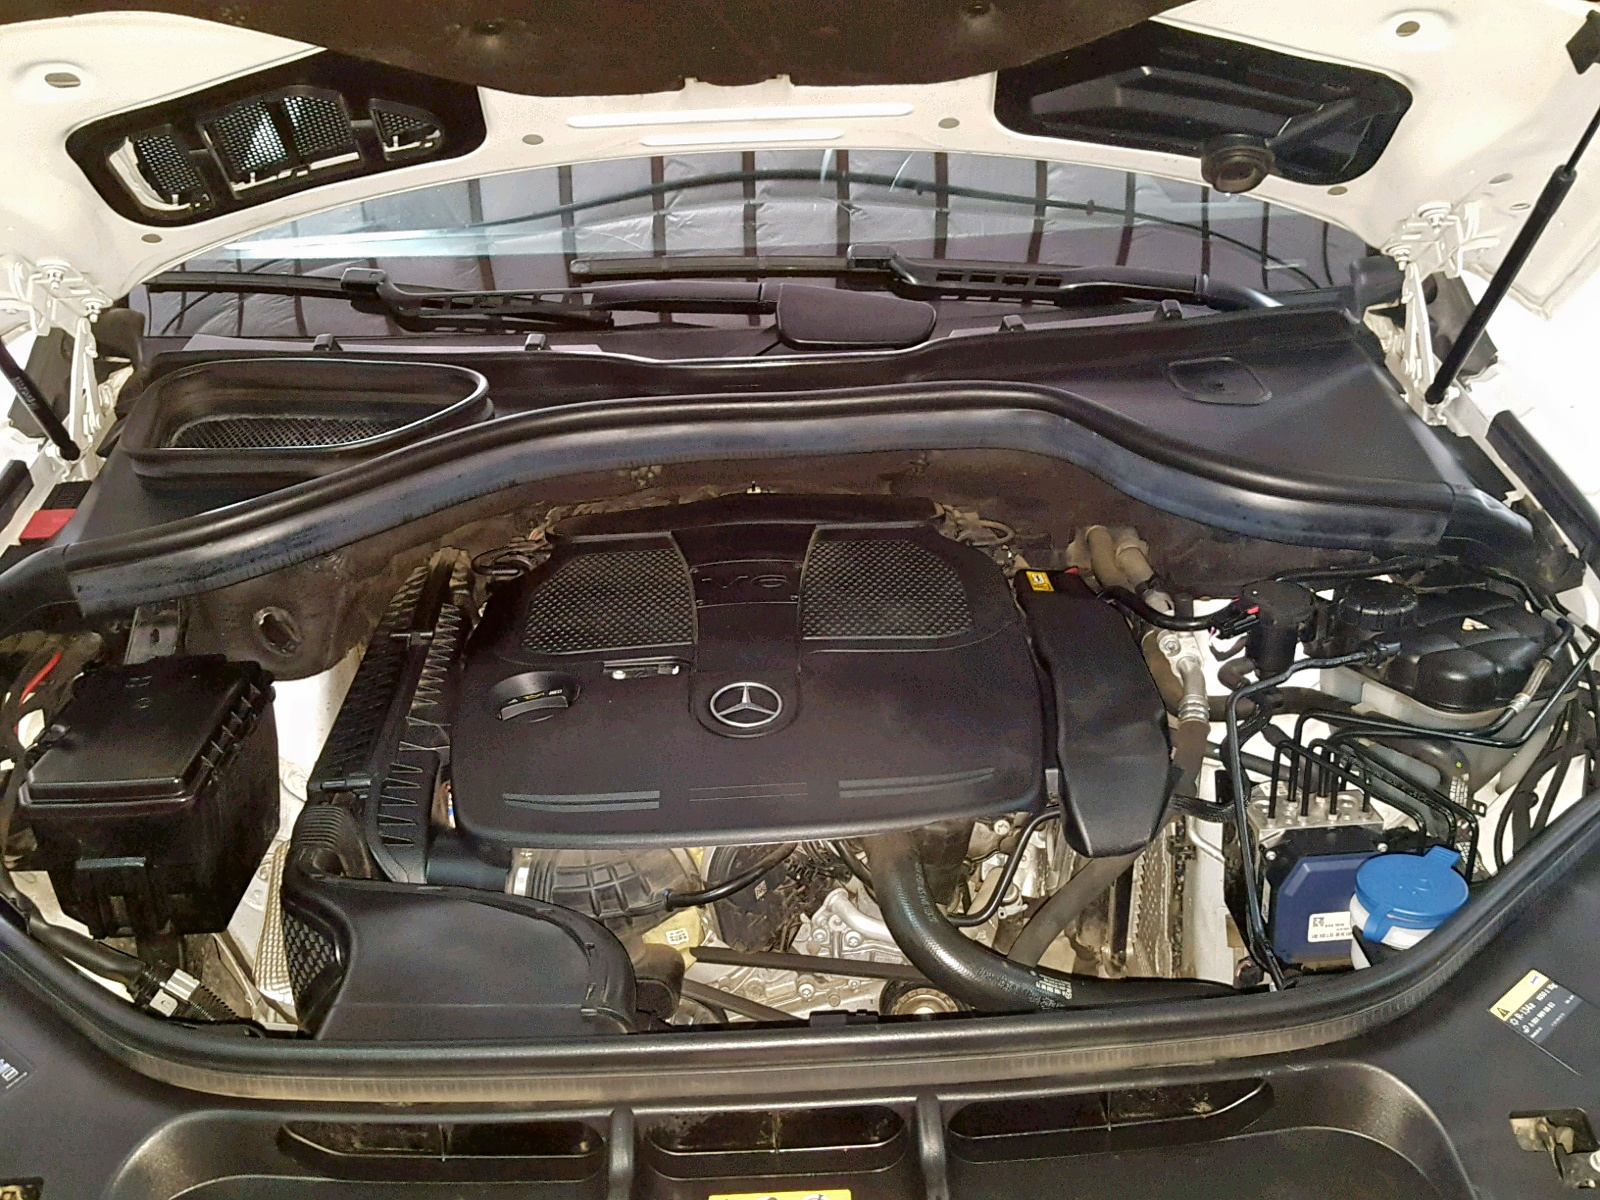 4JGDA5JB7EA343090 - 2014 Mercedes-Benz Ml 350 3.5L inside view